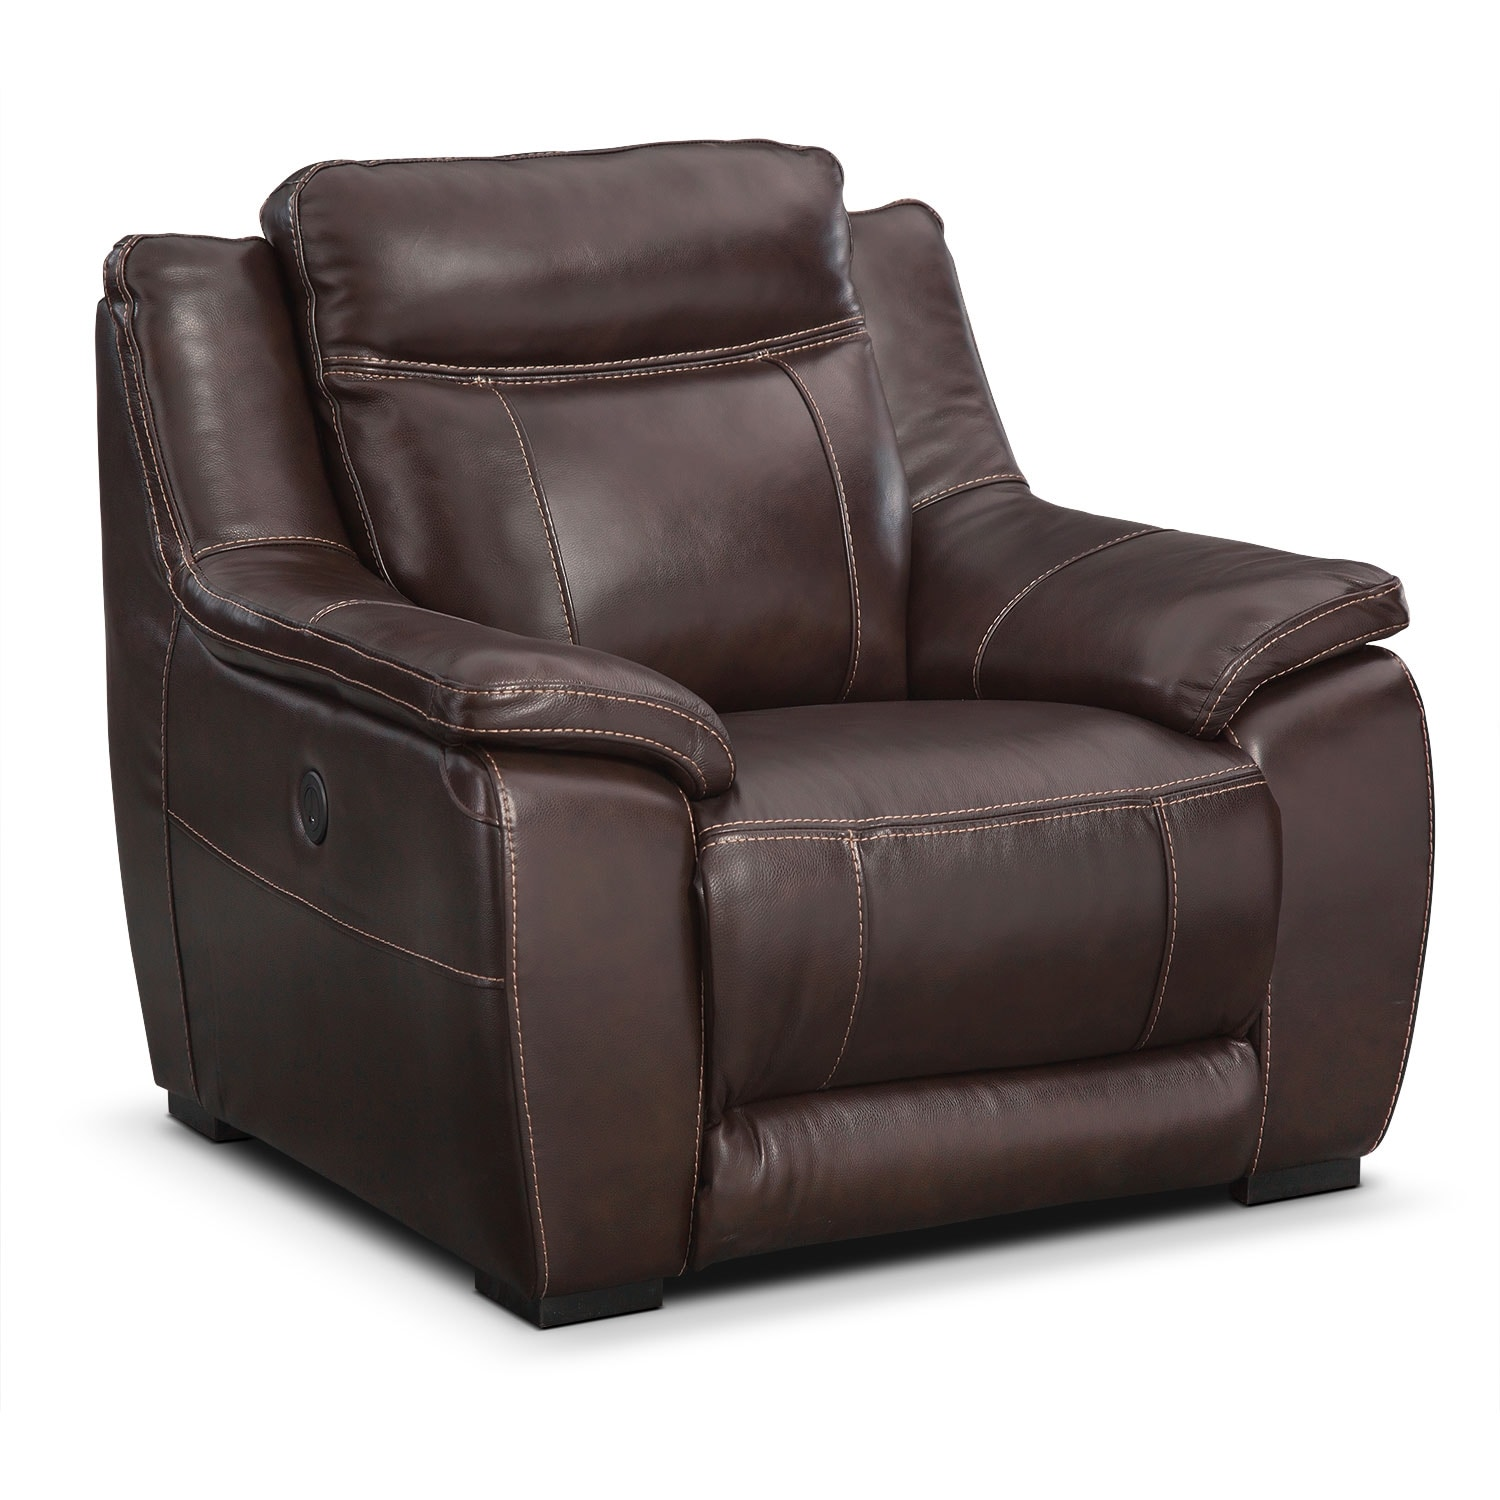 Living Room Furniture - Lido Brown Power Recliner